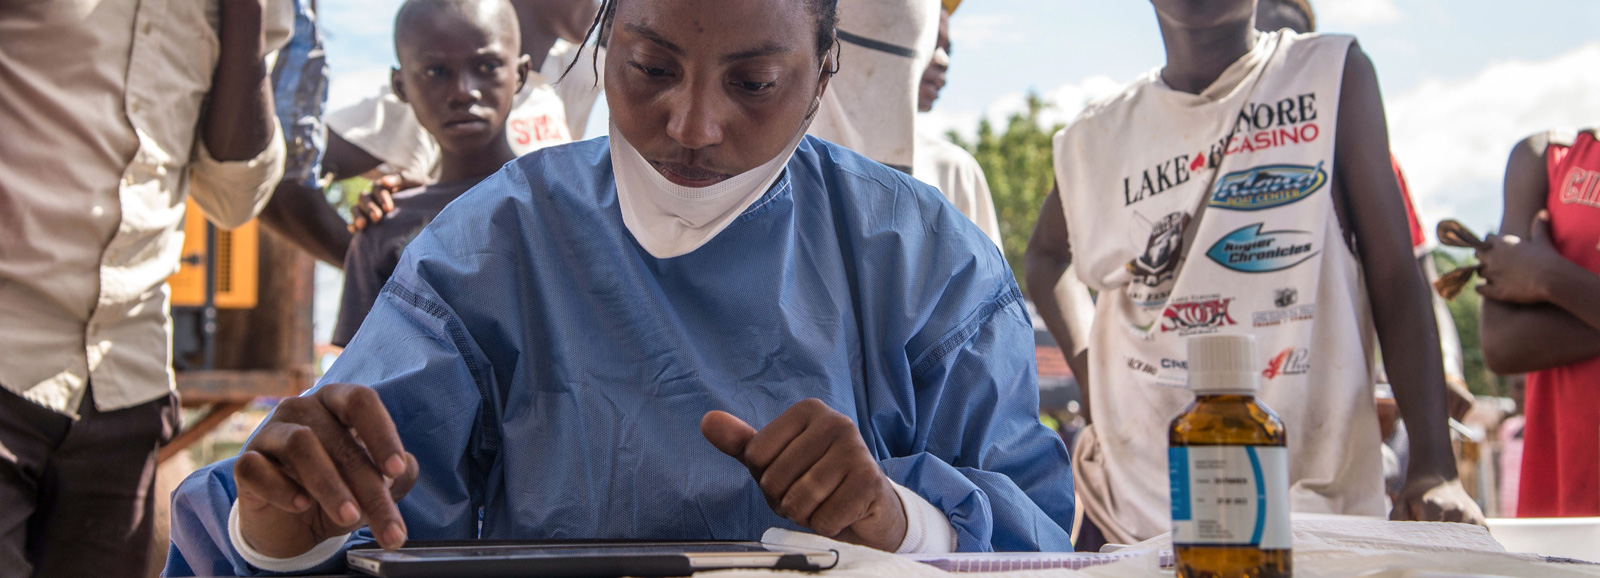 Nurses working with the World Health Organization prepare to administer vaccines in Mbandaka, the Democratic Republic of the Congo, during the launch of the 2018 Ebola vaccination campaign.